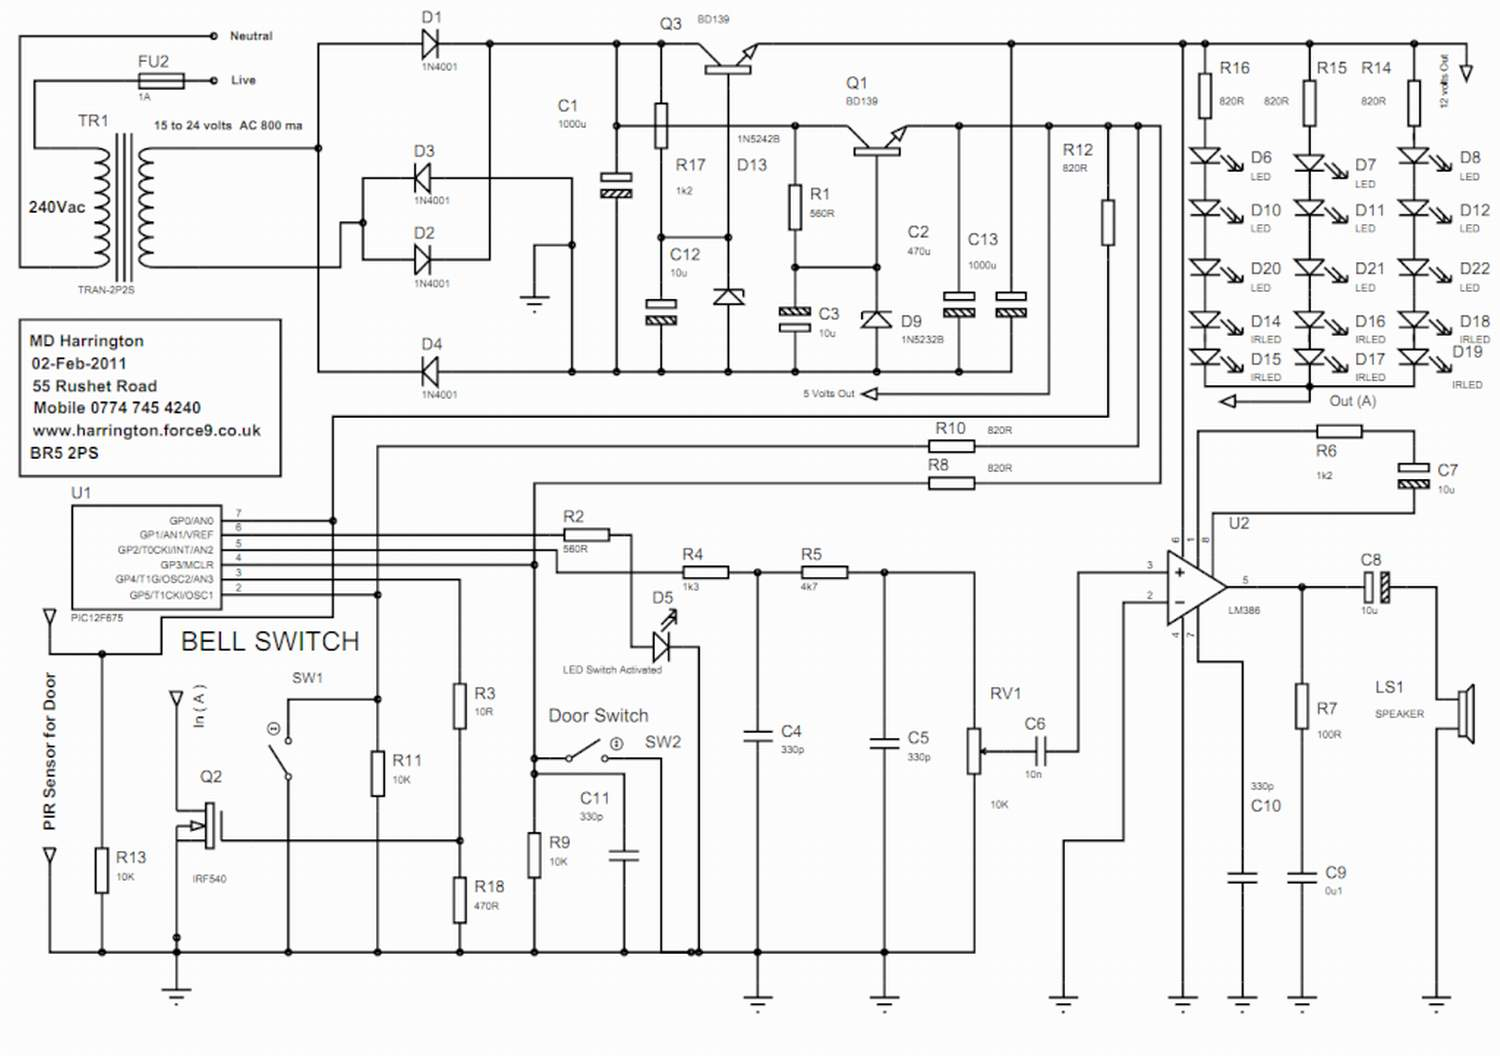 doorbell wiring schematic  u0026 wiring diagram page 165 top 10 doorbell wiring diagram download u0026quot  u0026quot sc